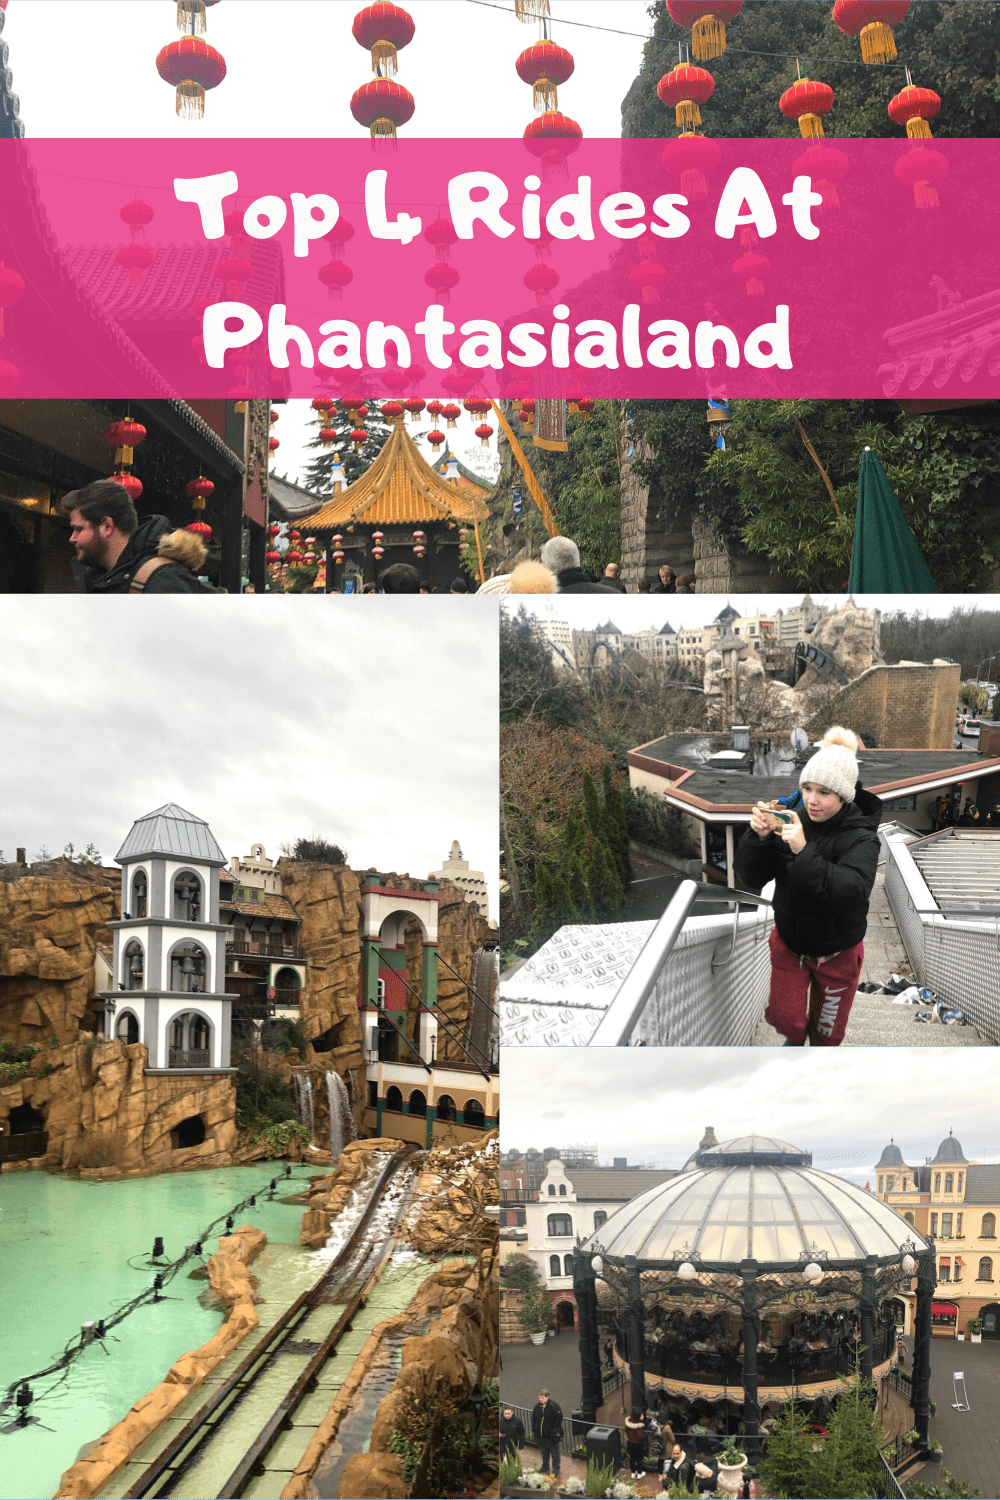 If you're heading to #Phantasialand - here are the top 4 rides you'll want to go on!